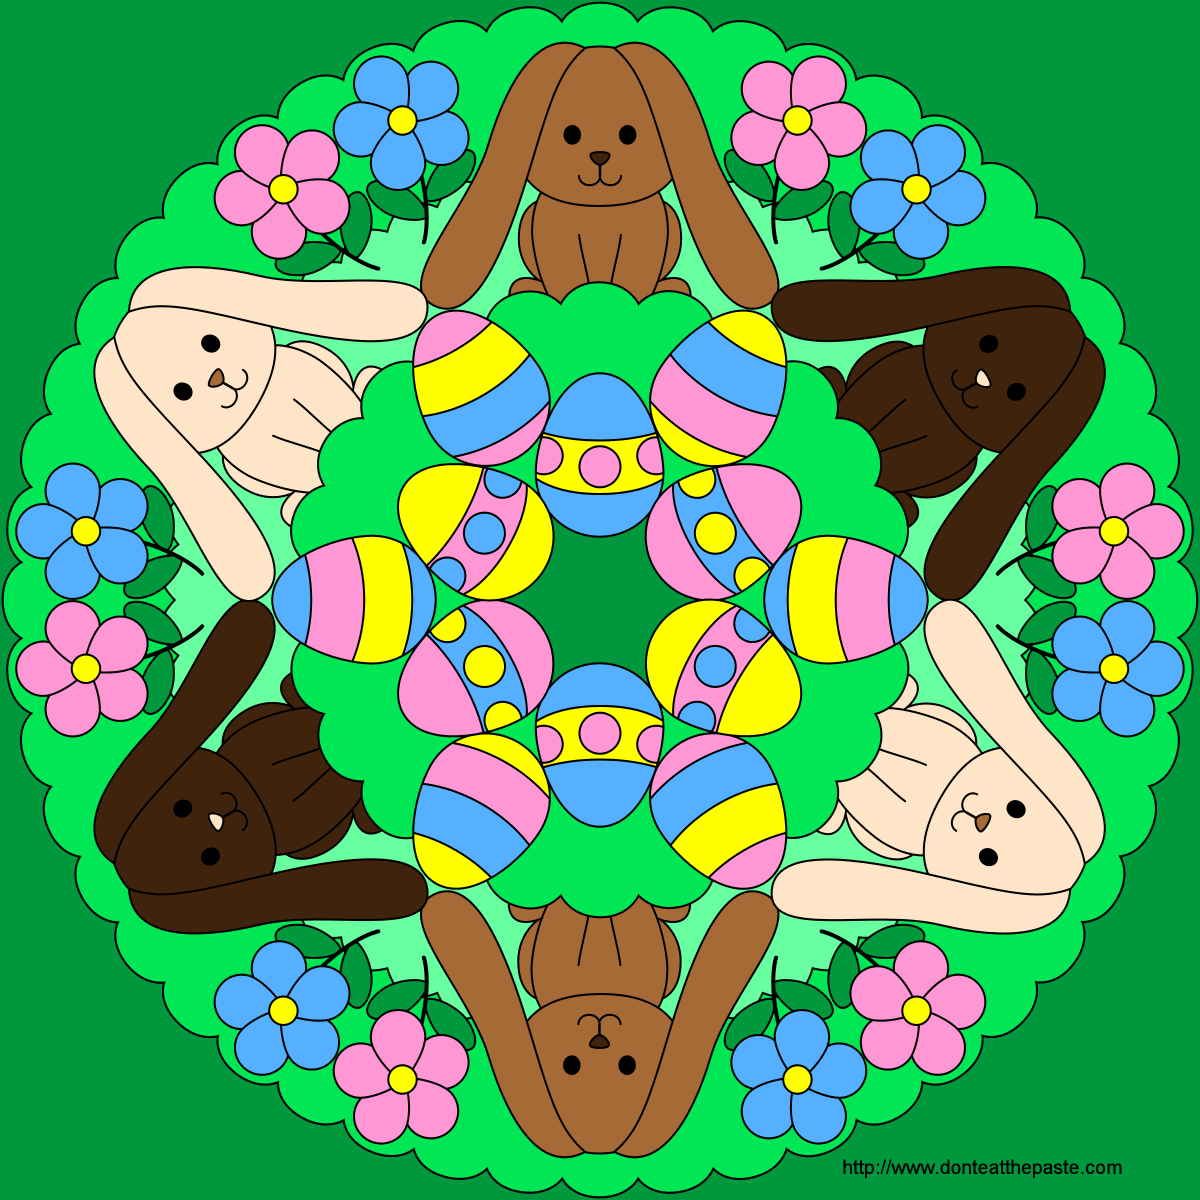 Don't Eat the Paste: Easter Bunny and Egg Mandala to Color